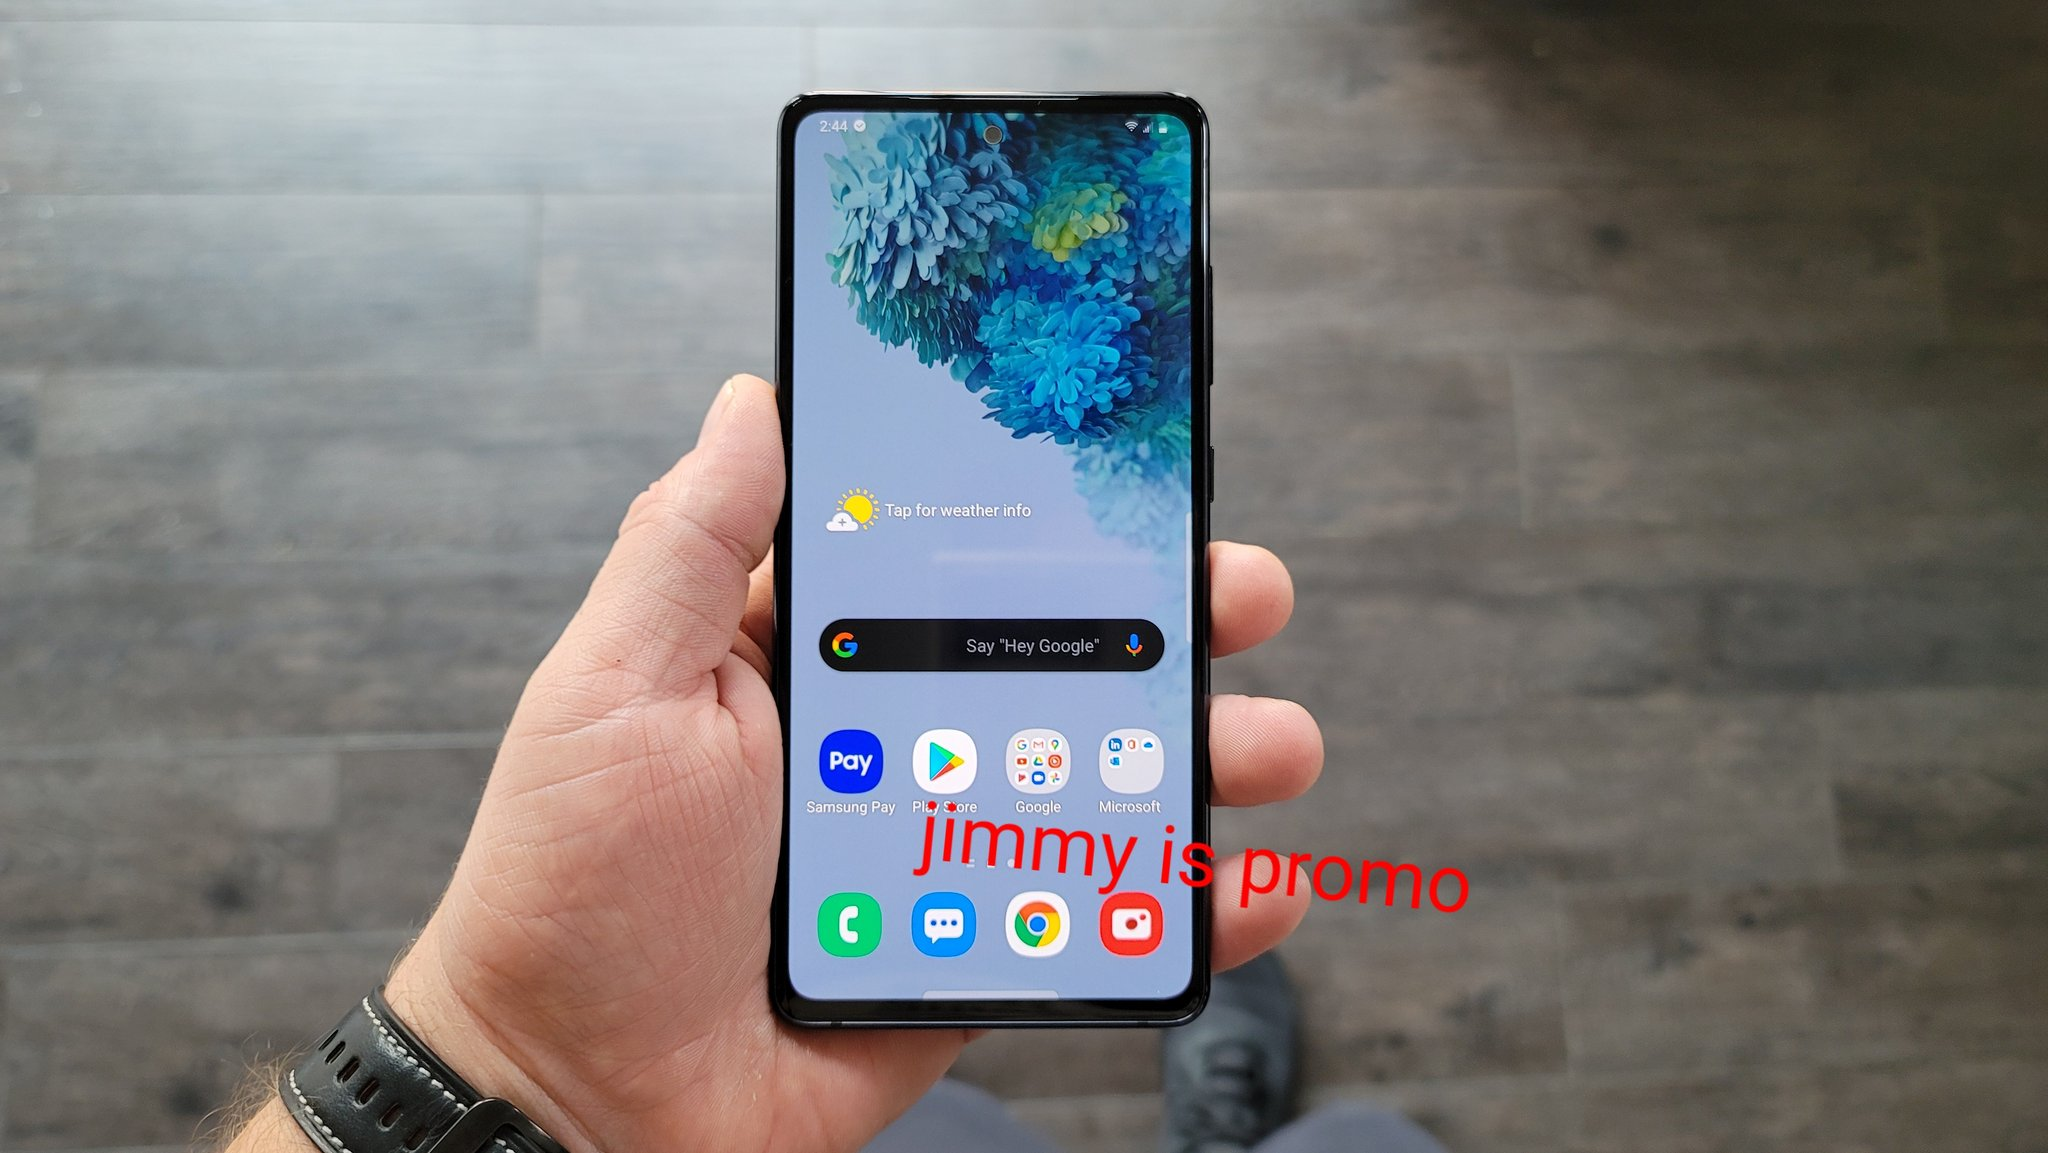 Galaxy S20 Fe 5g Leaks In Real Life Images Flat Display Confirmed Sammobile Sammobile